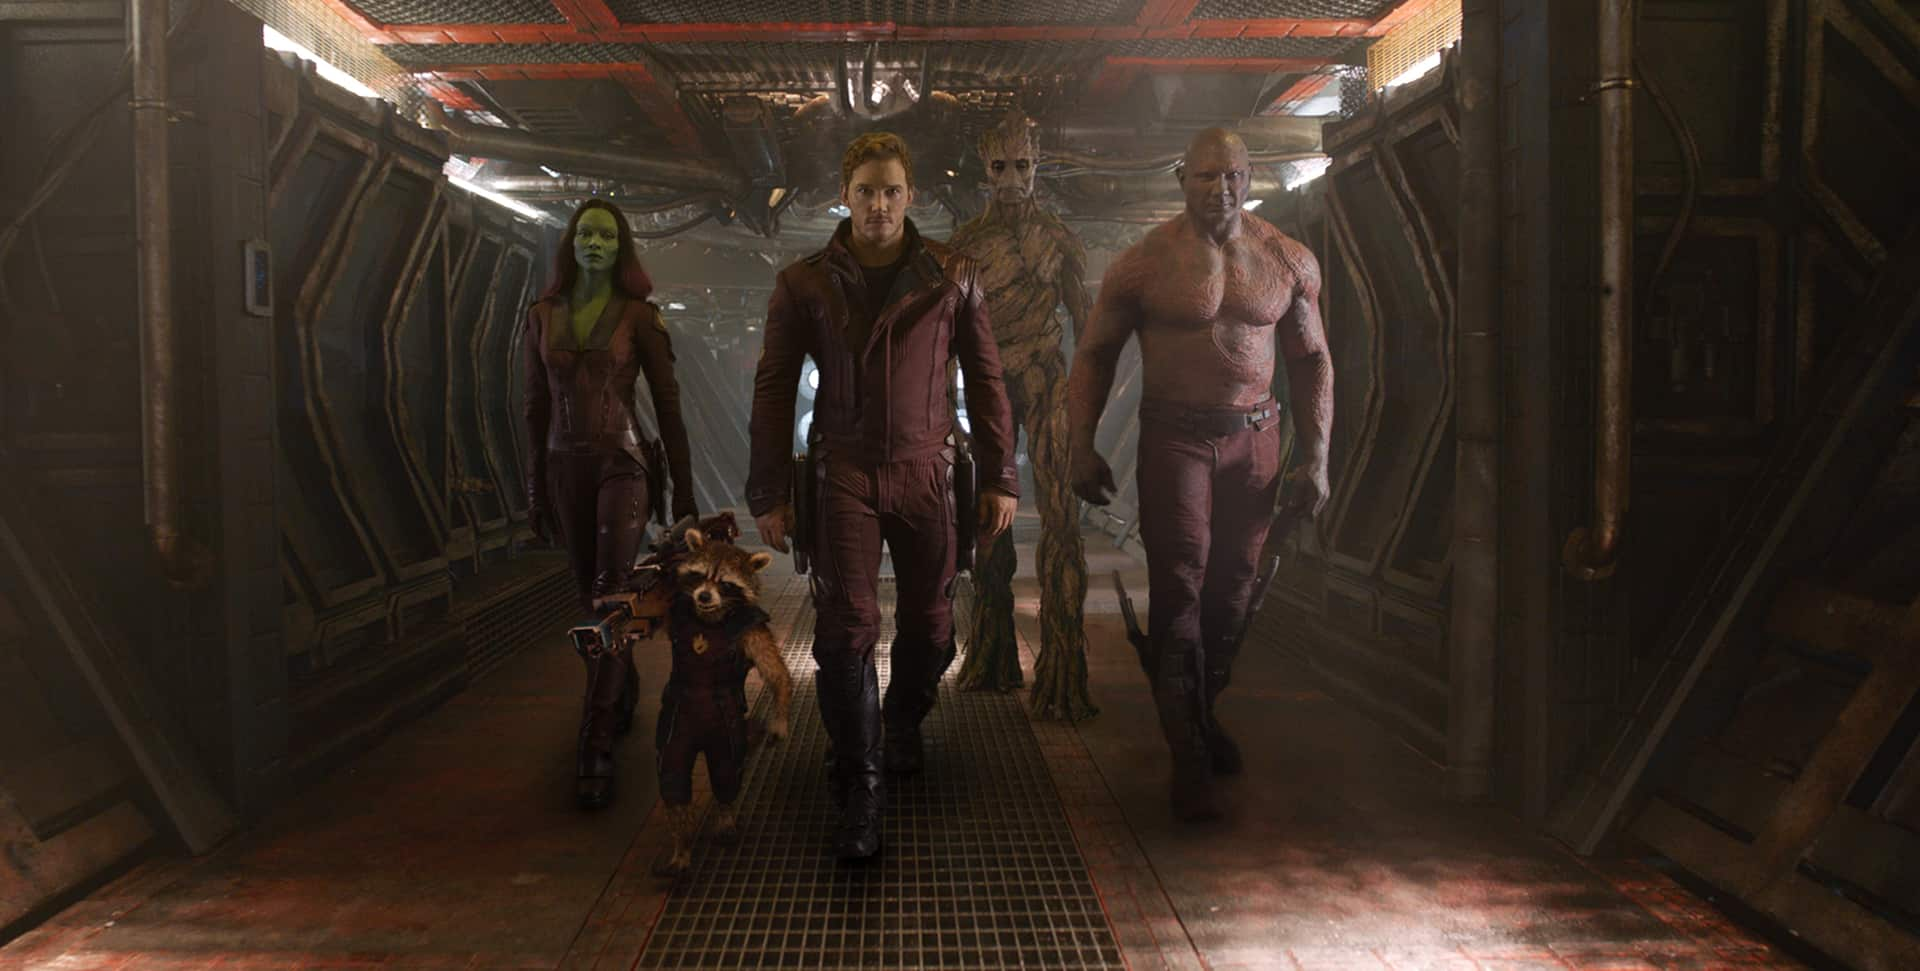 Guardians of the Galaxy review, movie images